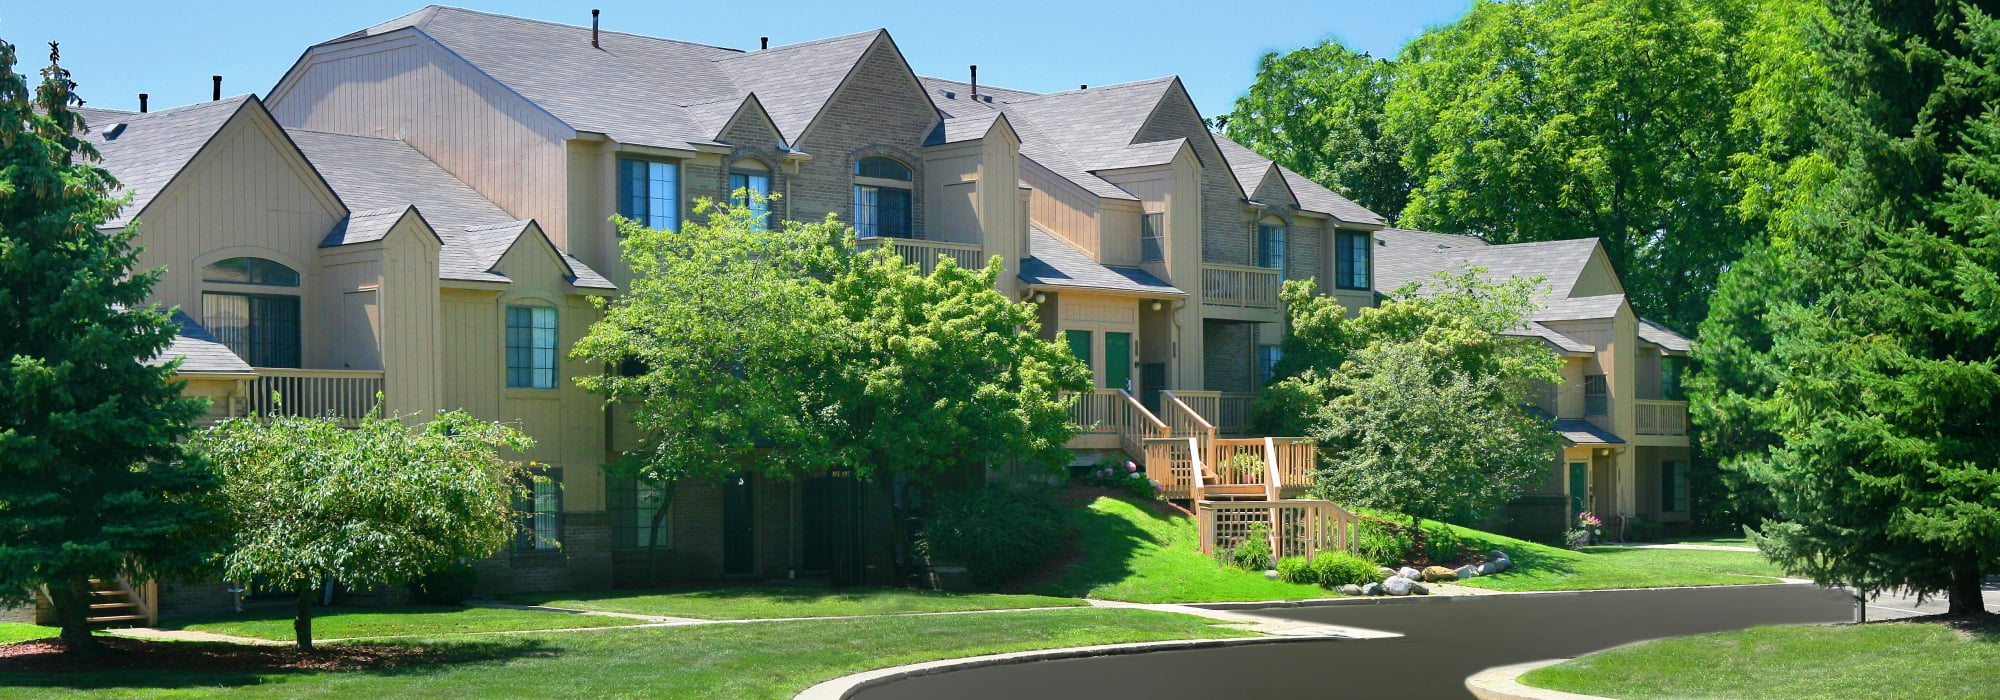 Saddle Creek Apartments in Novi, Michigan